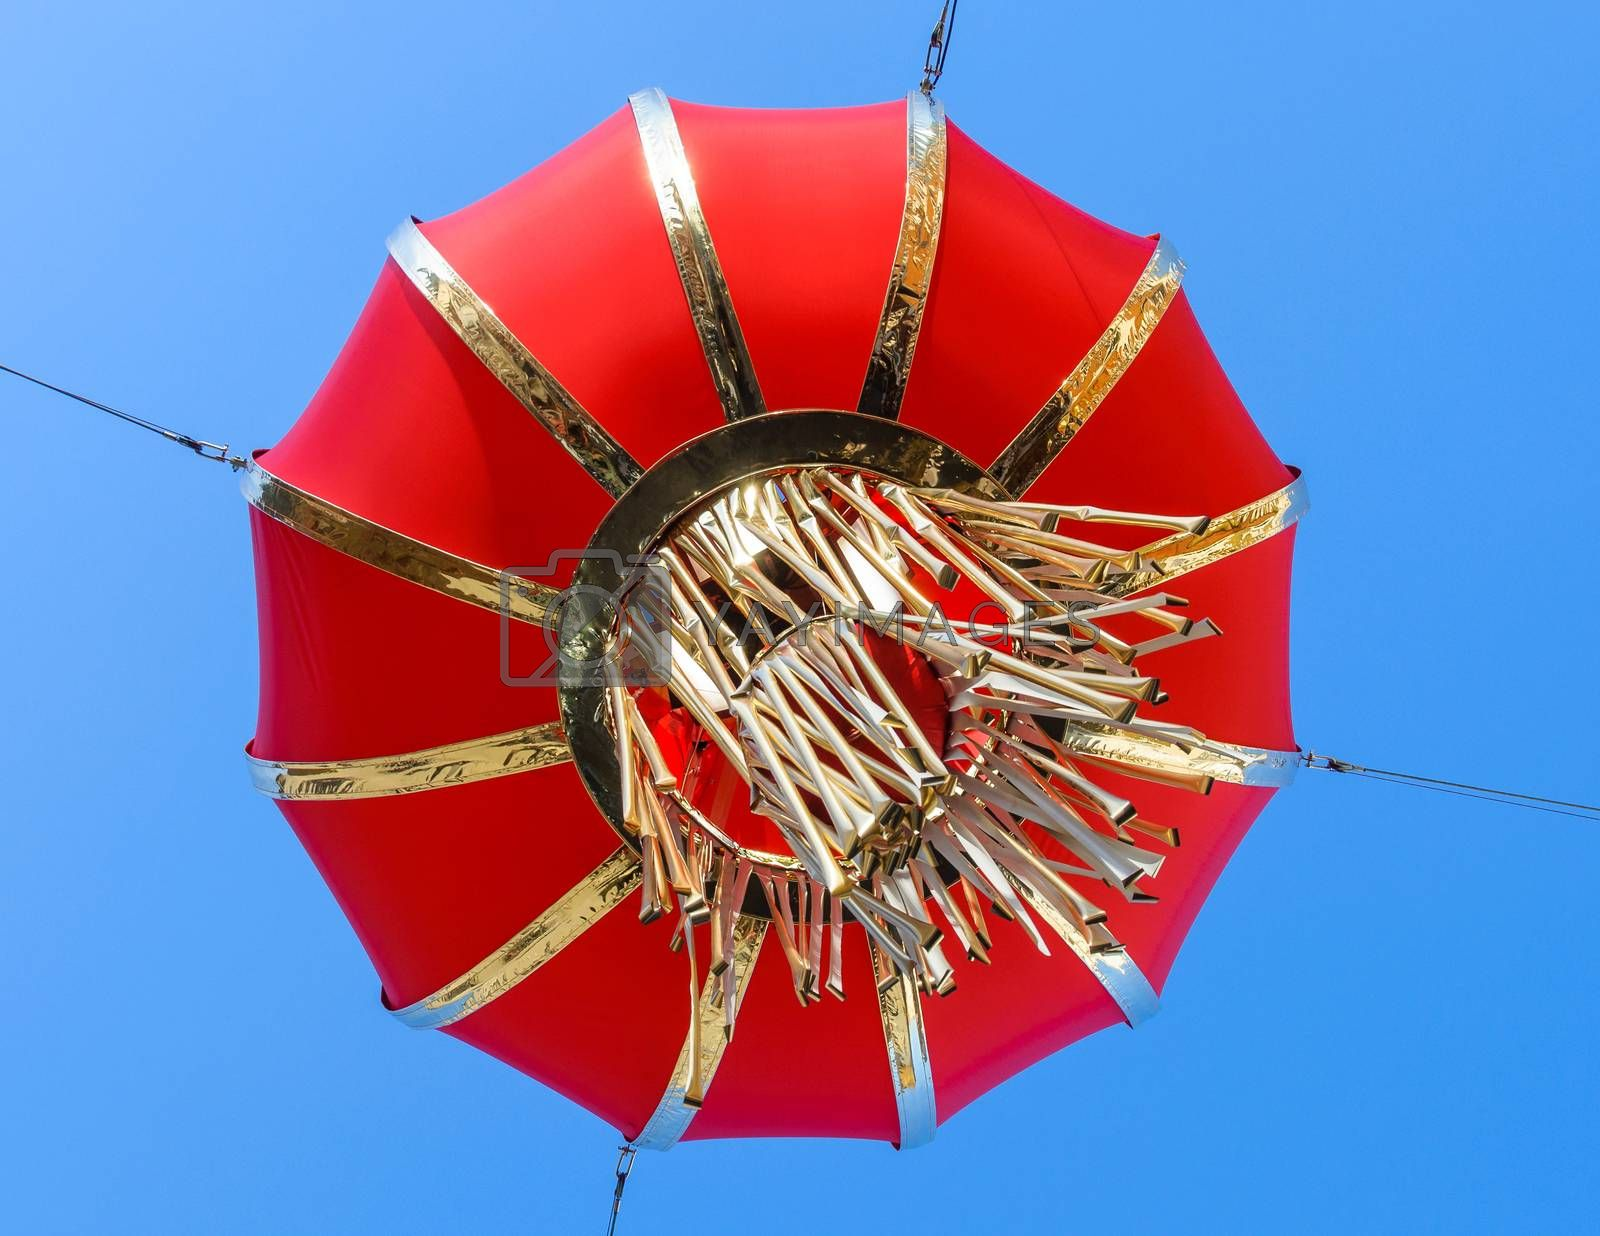 Red chinese lantern, blue sky background